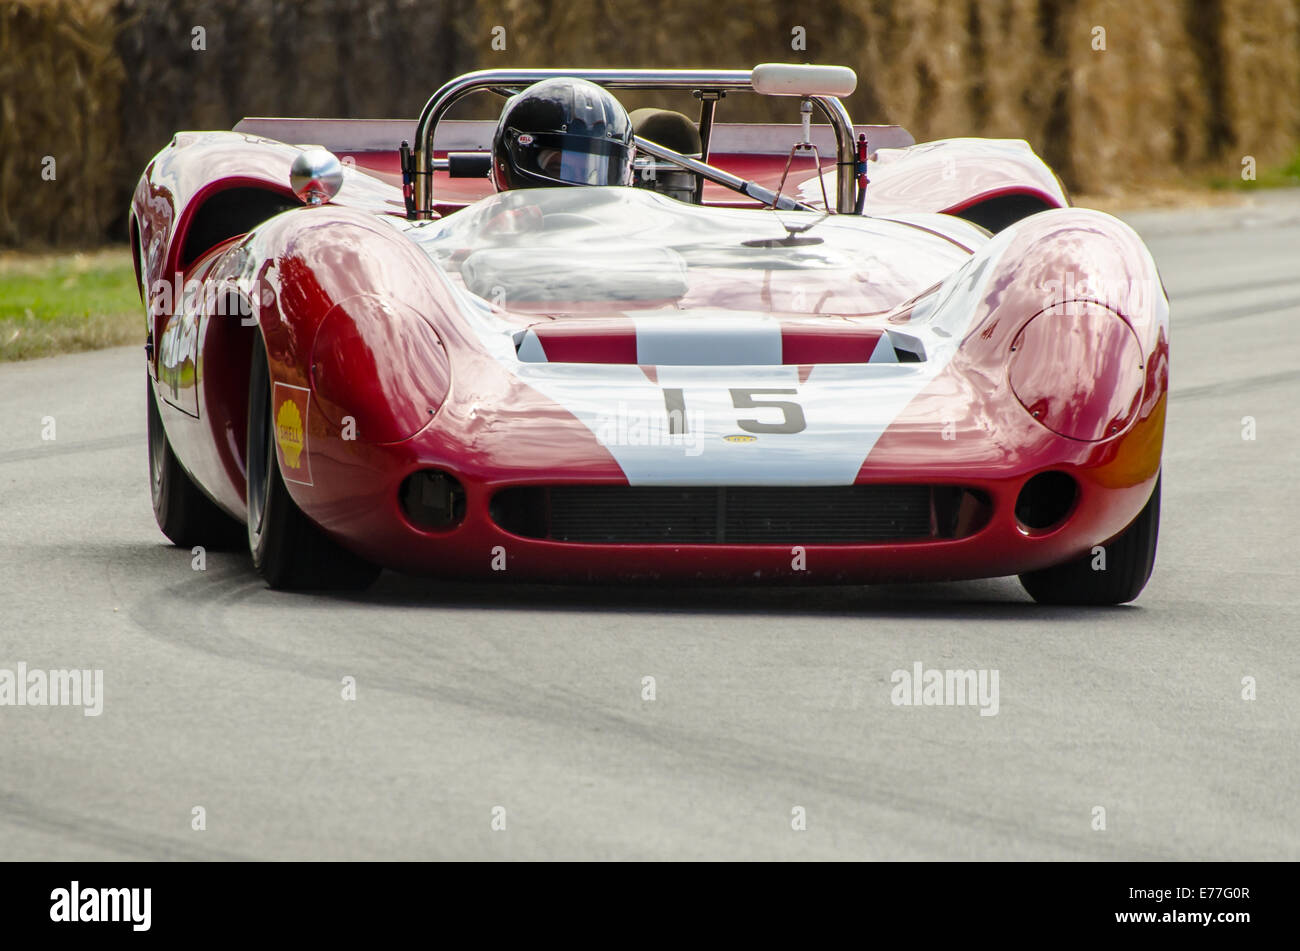 The Lola Was Built For Sports Car Racing Popular In The Mid